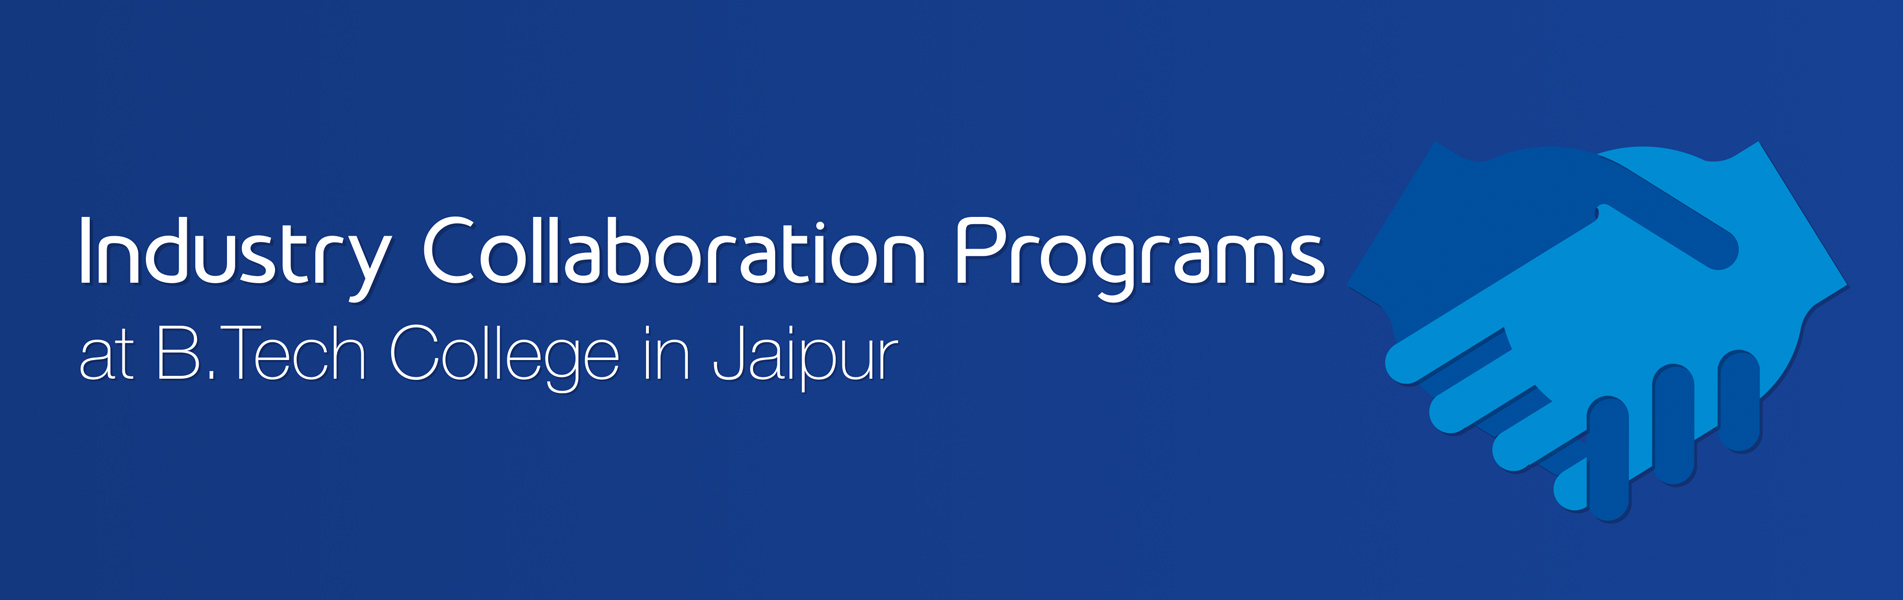 Industry-Collaboration-Programs-at-B-Tech-College-in-Jaipur